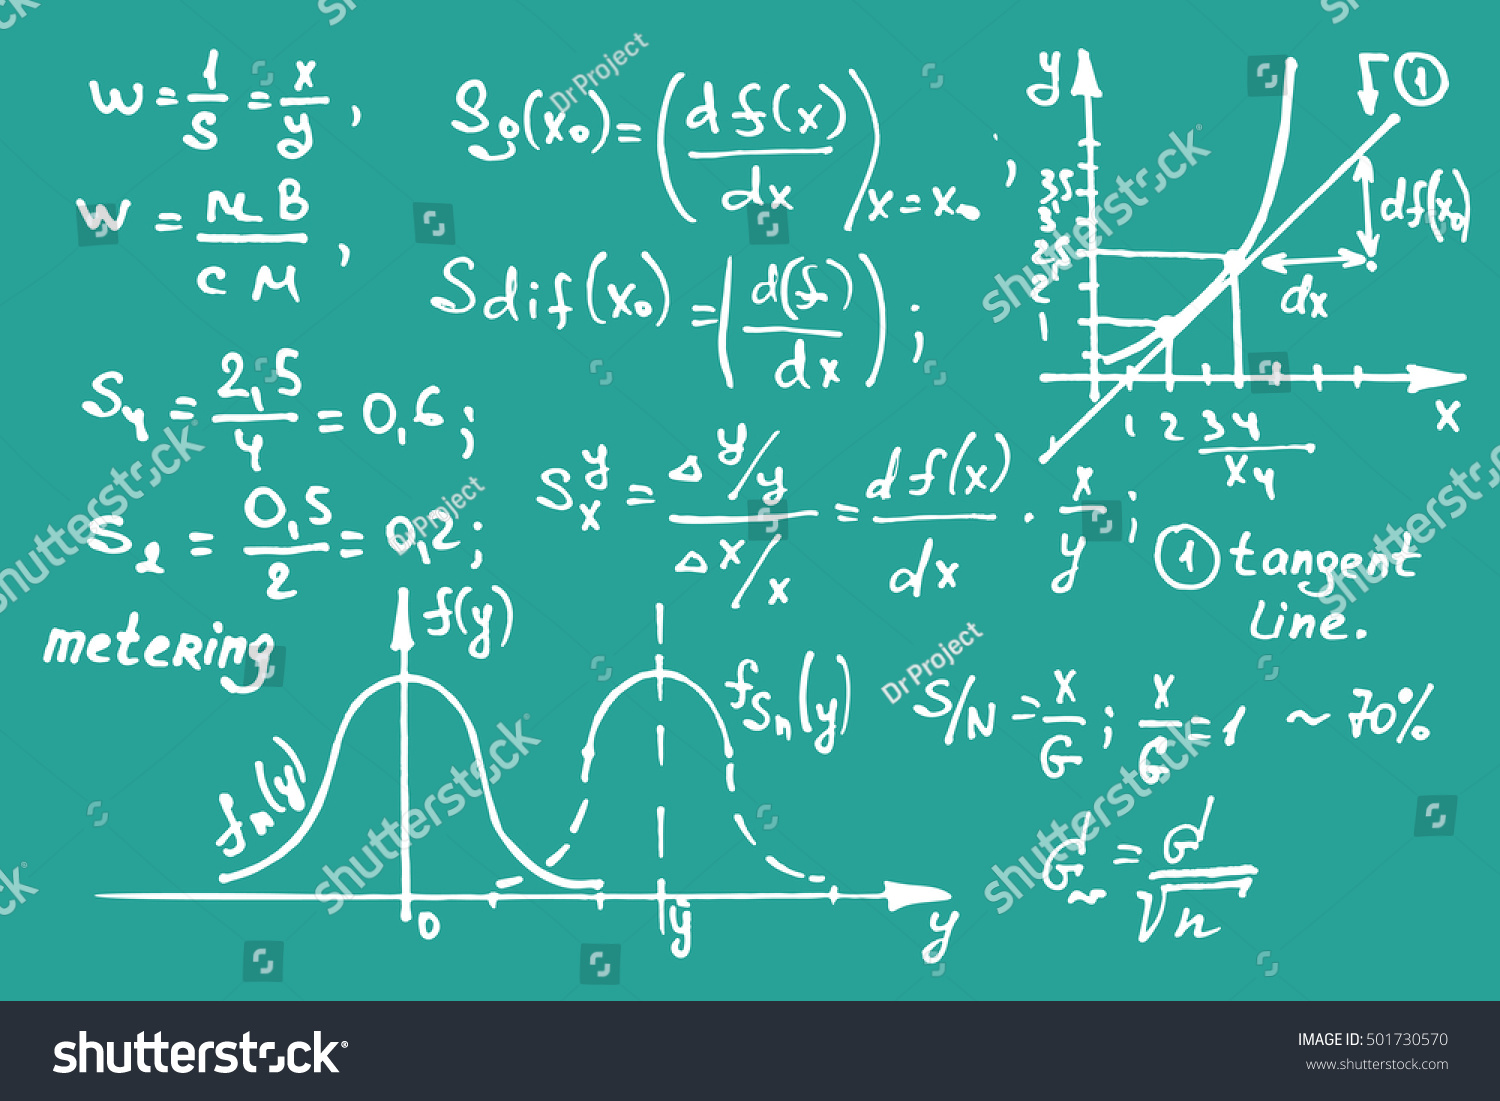 Maths Equations On School Board Vector Stock Vector (Royalty Free ...